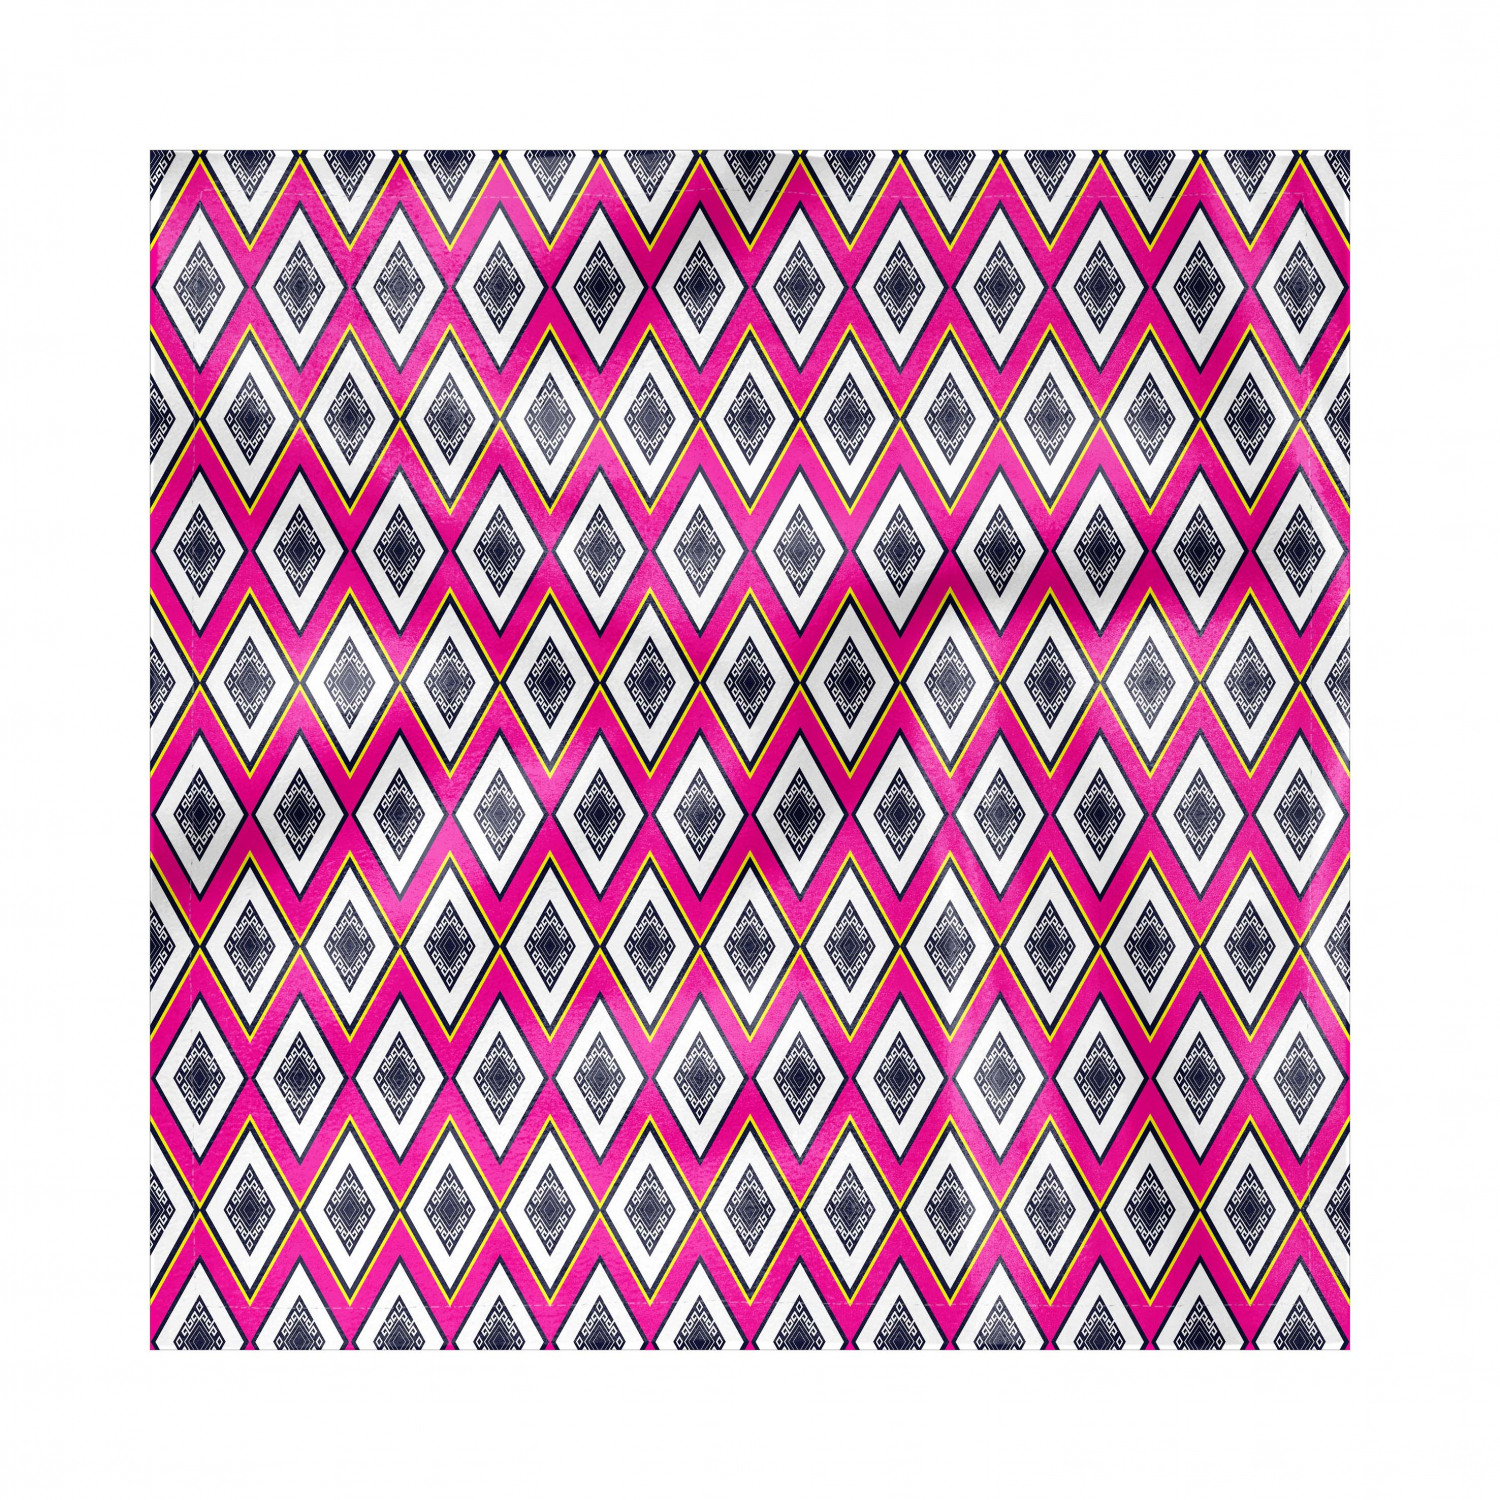 Geometric Napkins Set Of 4, Rhombus Pattern With Motifs